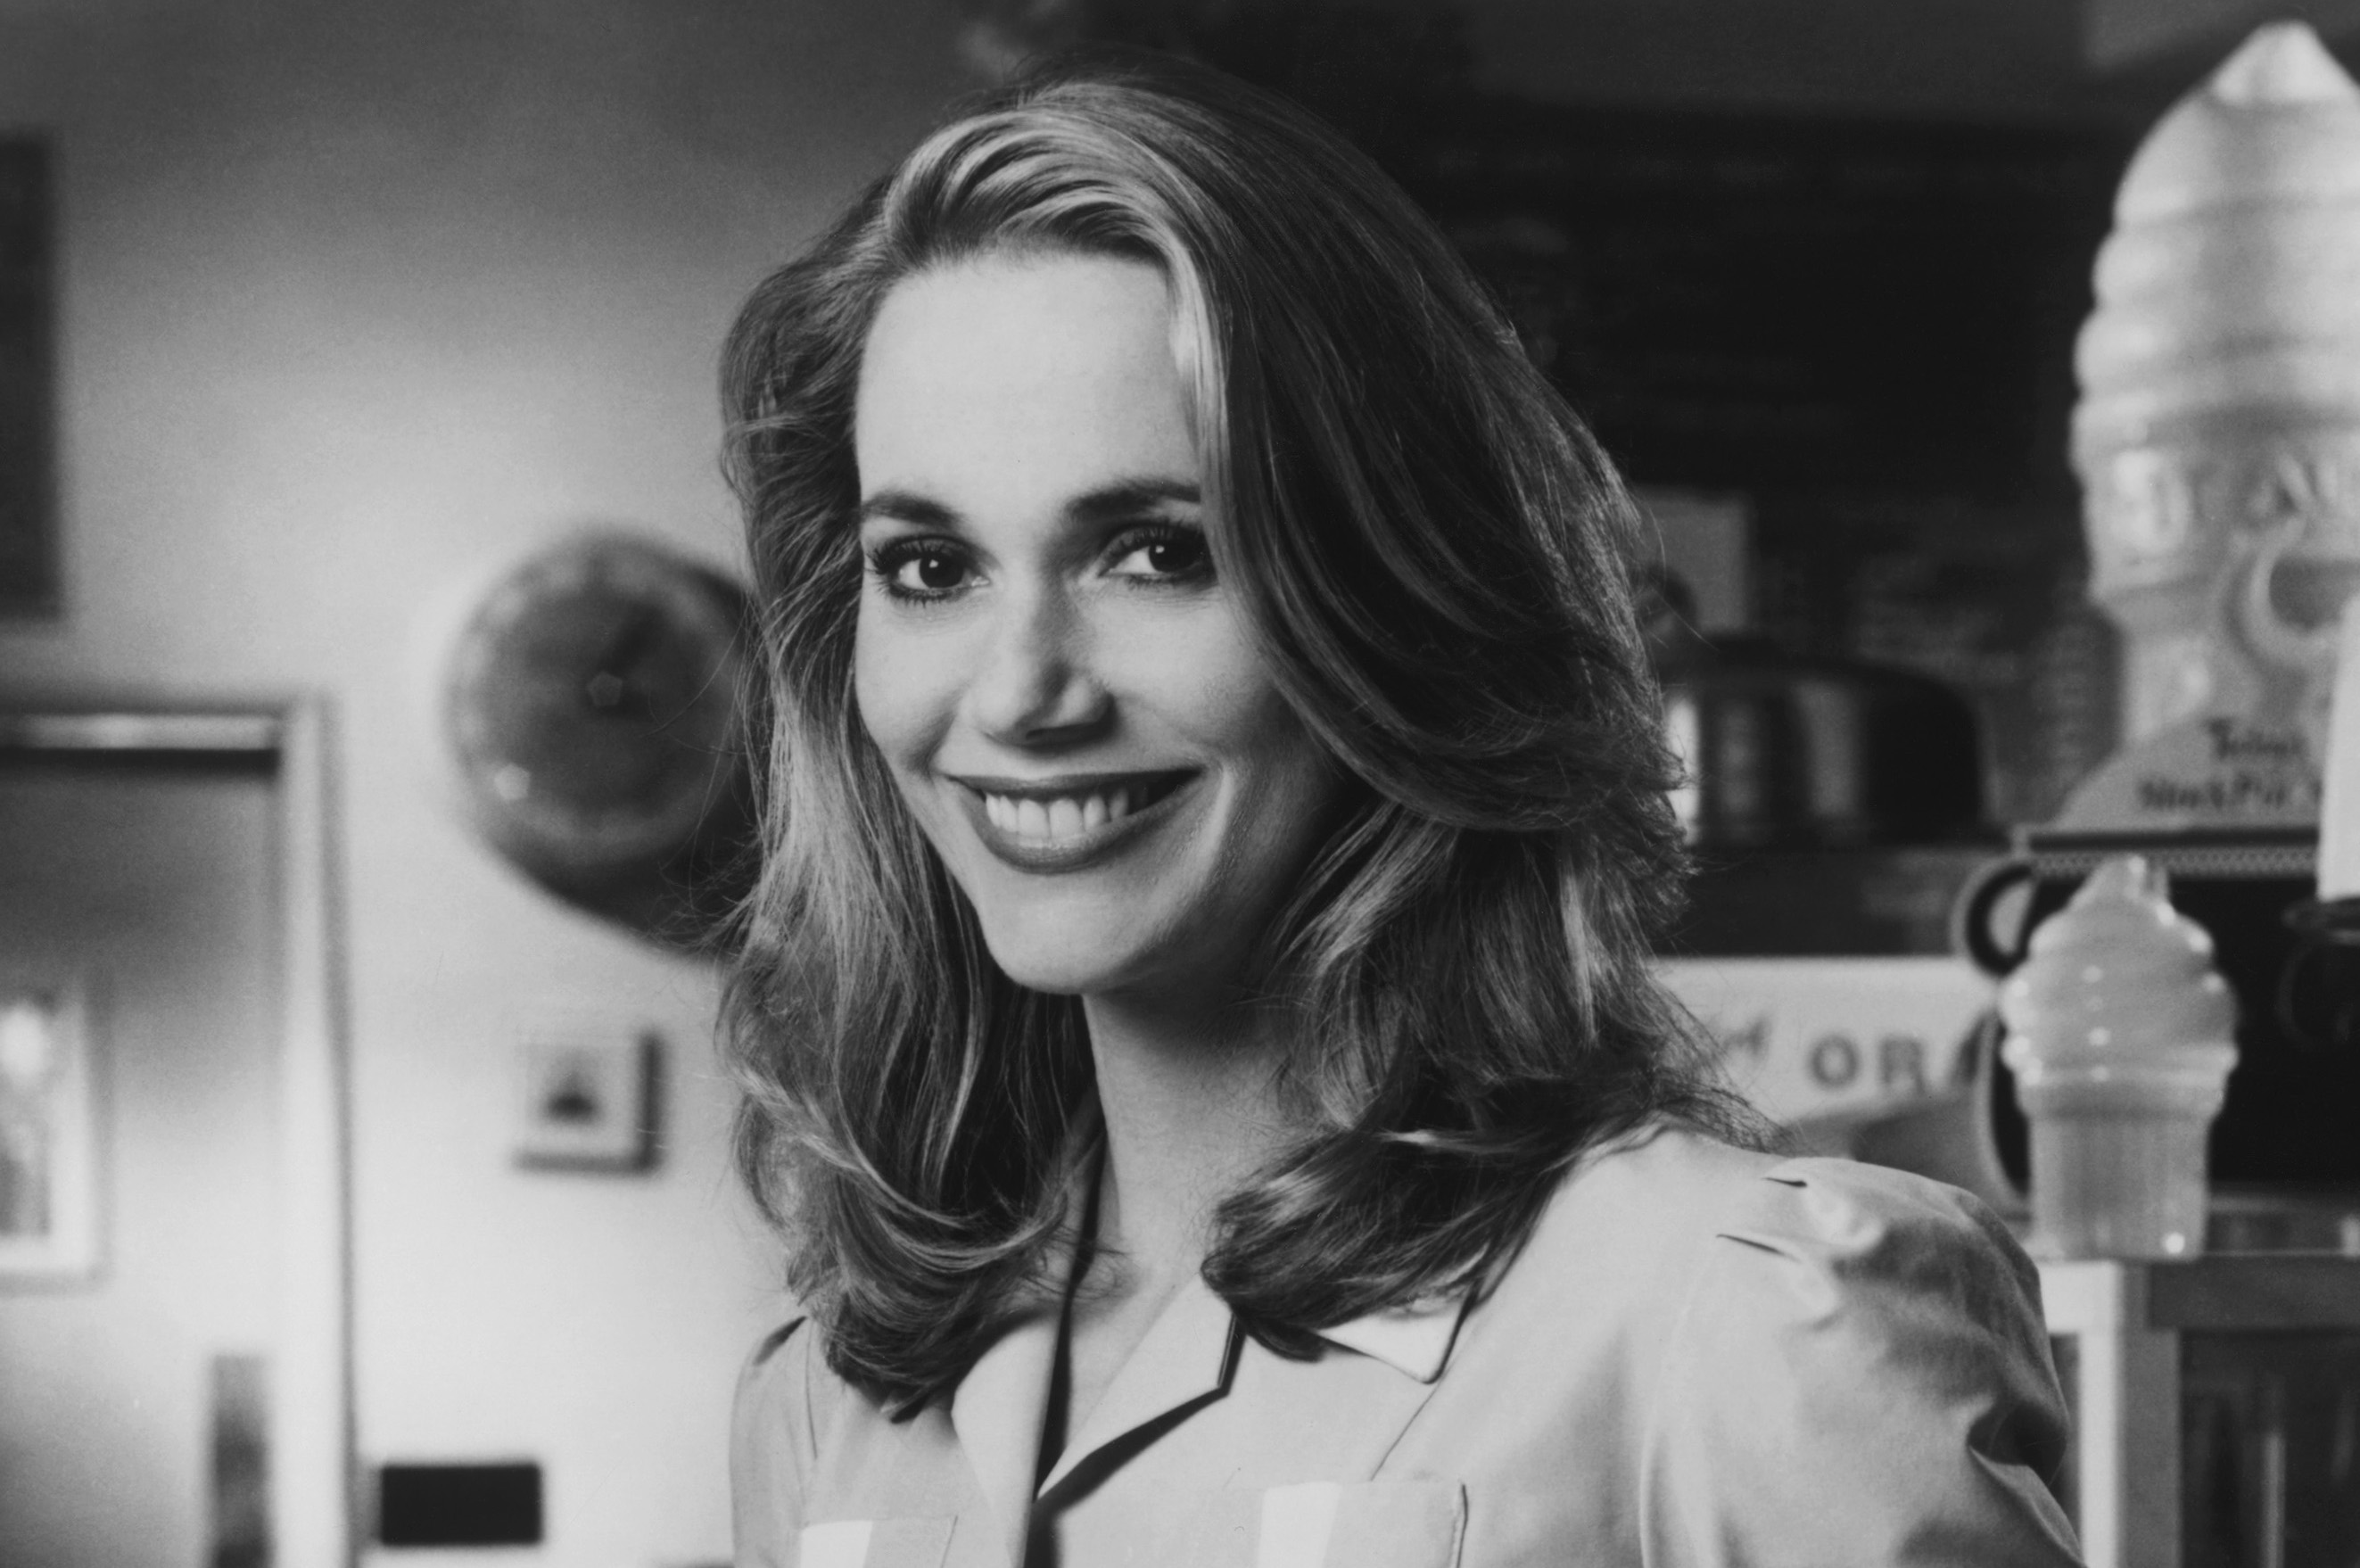 Peggy Lipton, 'Twin Peaks' and 'The Mod Squad' Actress, Dead at 72